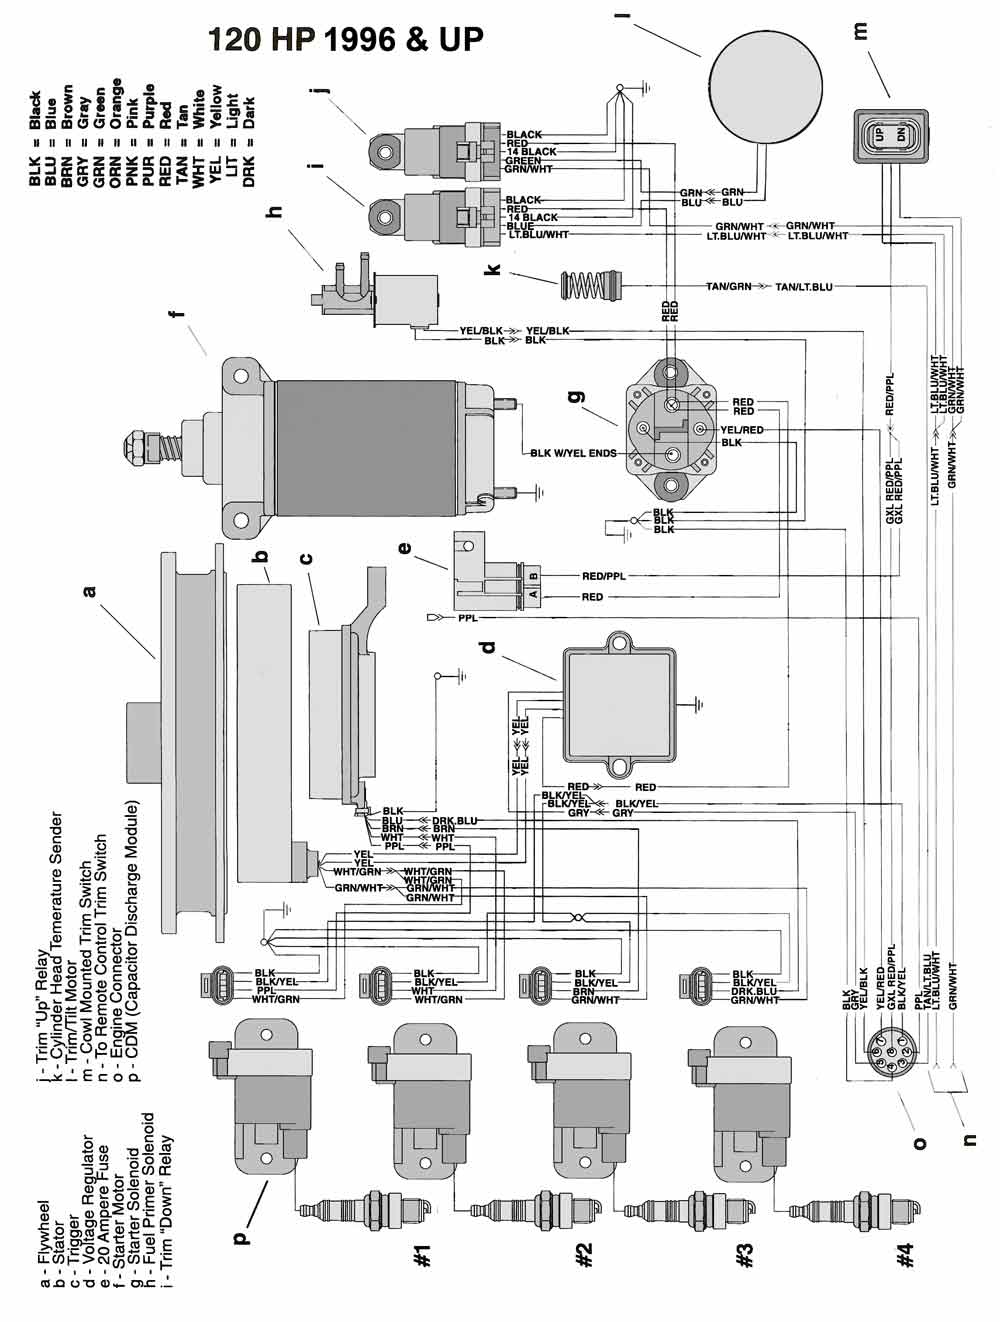 125 Hp Wiring Diagram Libraries 1991 Yamaha 115 Schematic Third Levelmastertech Marine Chrysler U0026 Force Outboard Diagrams